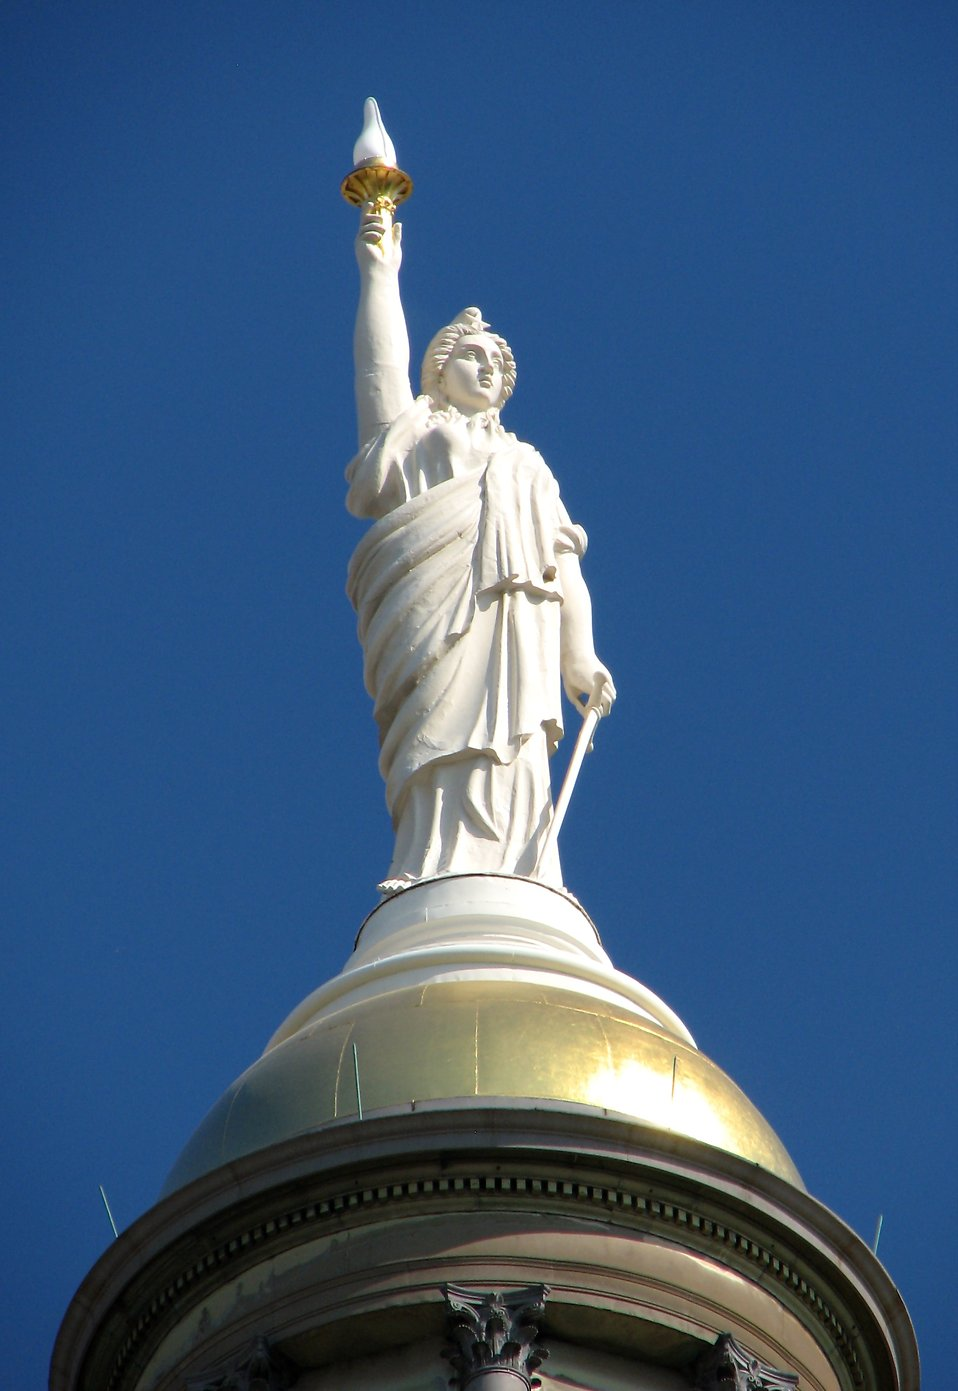 A statue on top of the Georgia State Capitol building in Atlanta, Georgia : Free Stock Photo